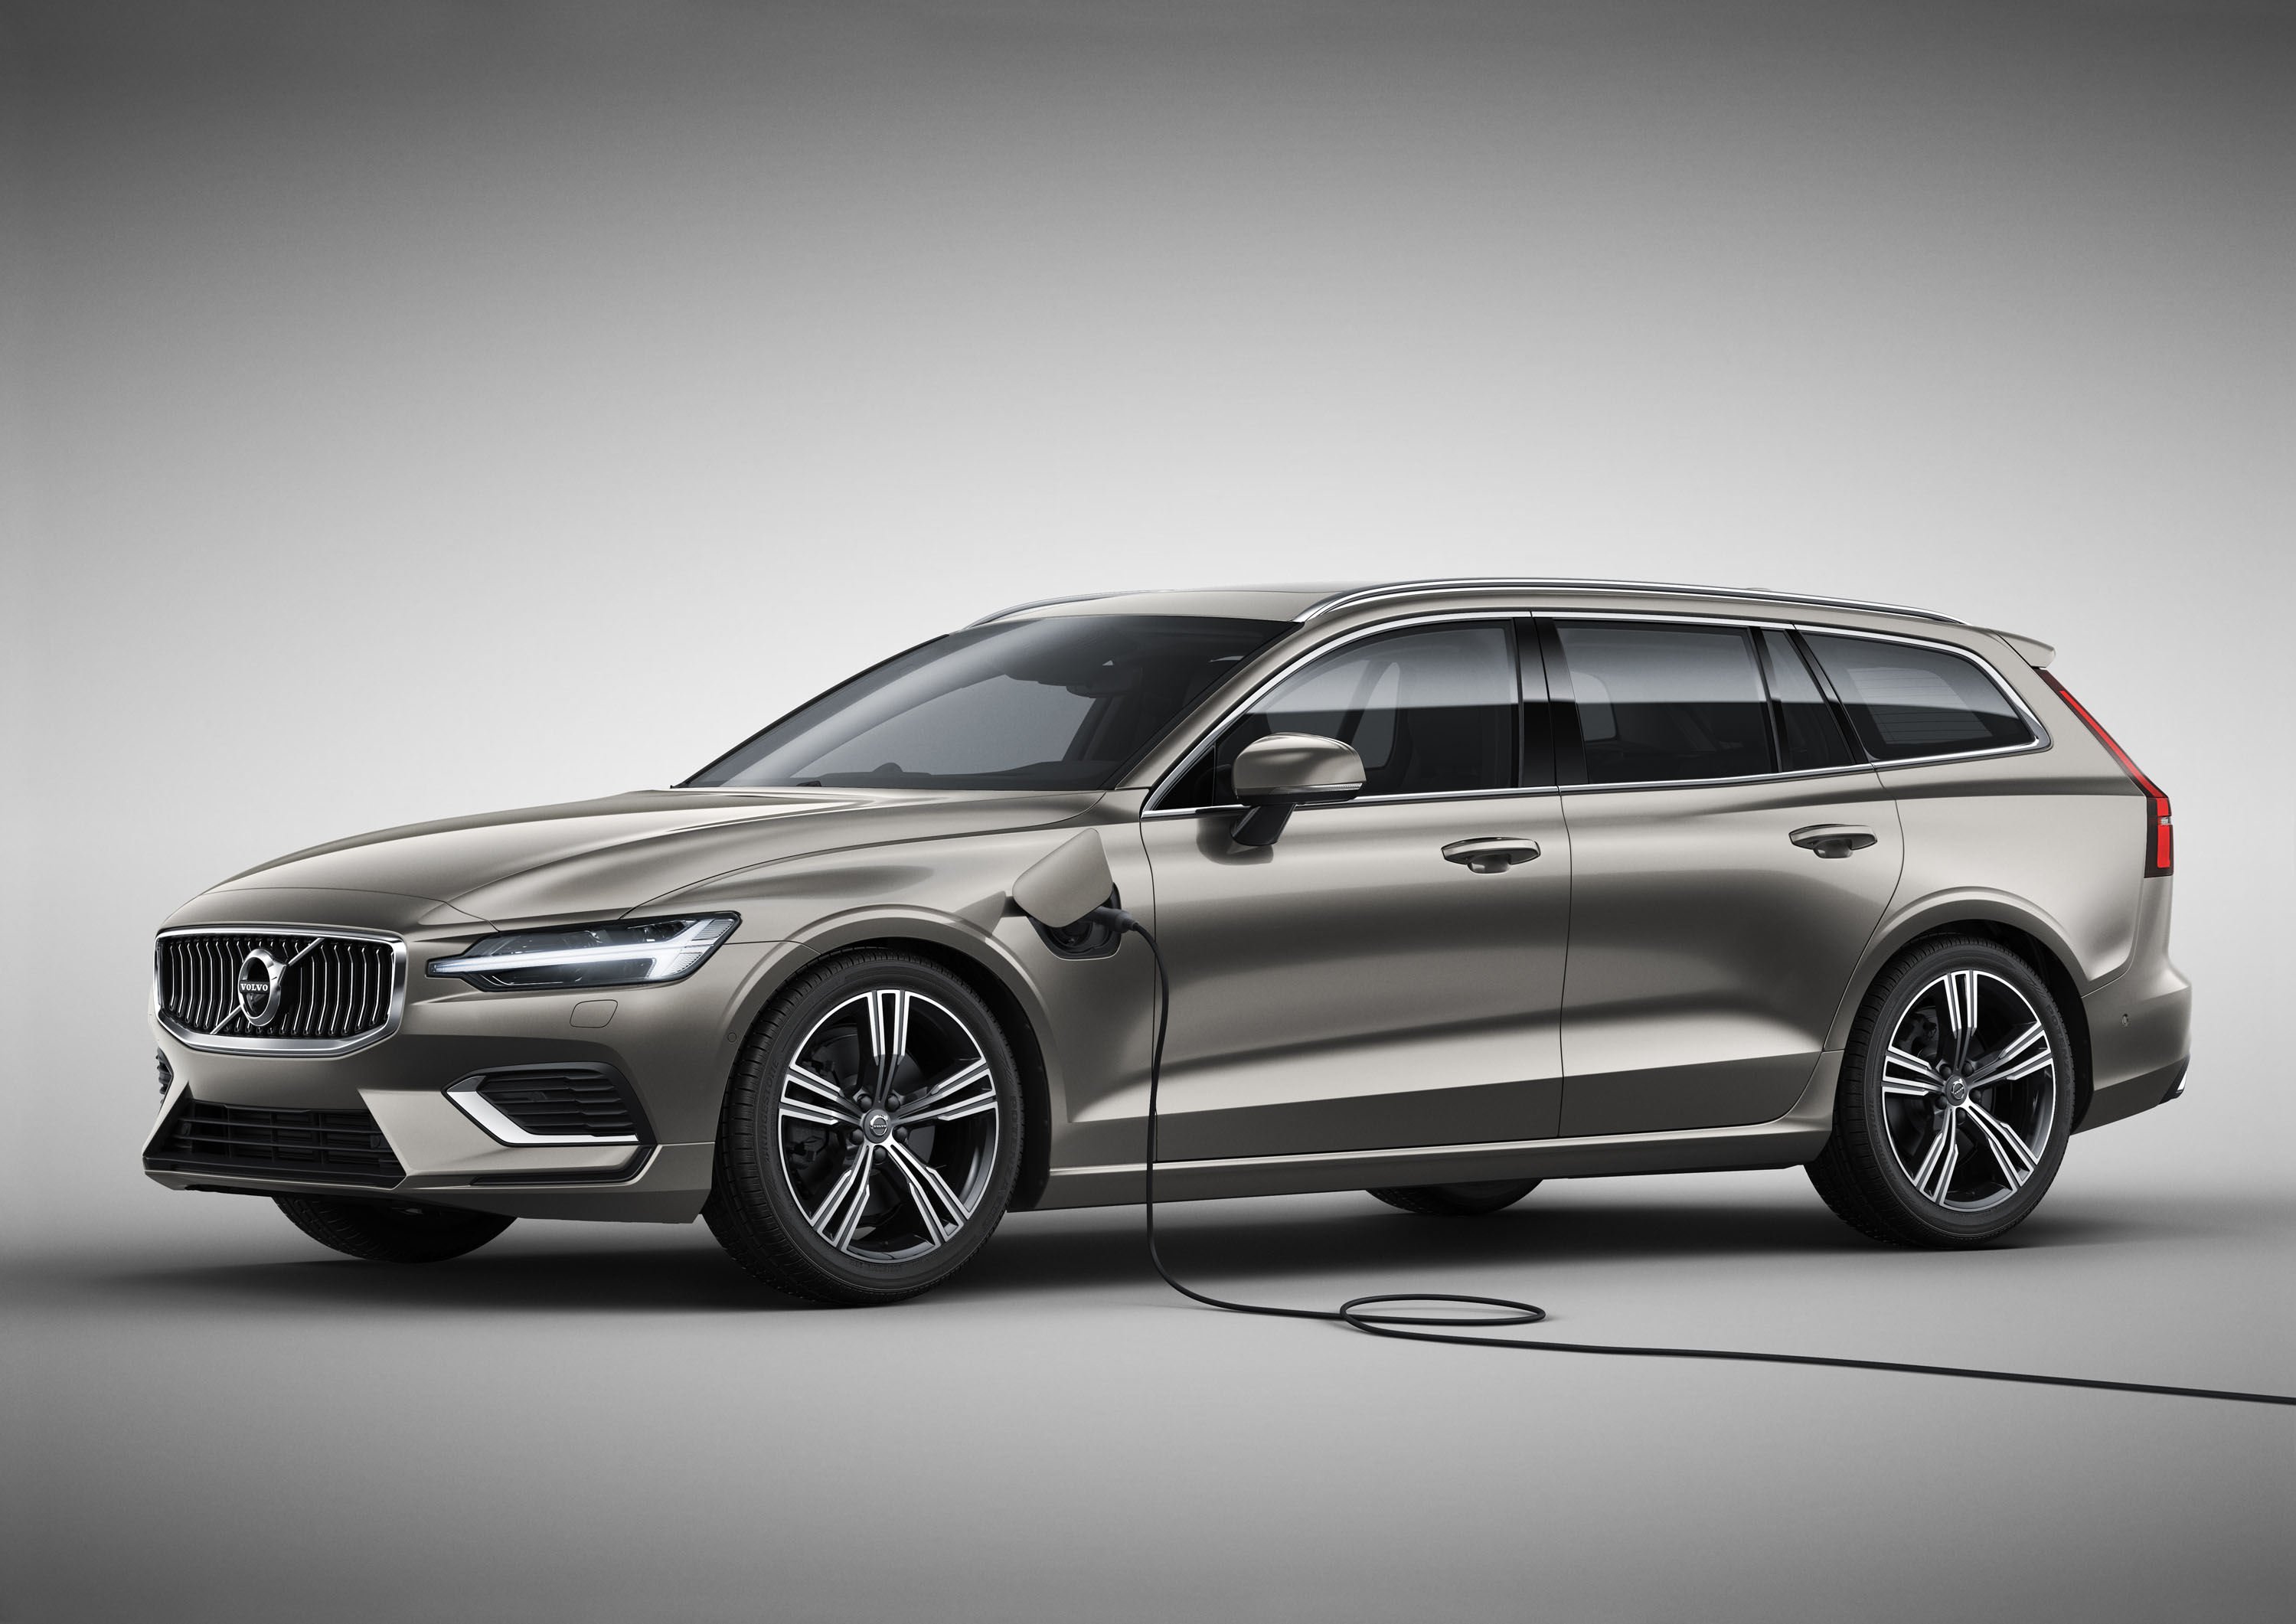 41 All New 2020 Volvo Xc70 New Generation Wagon New Concept